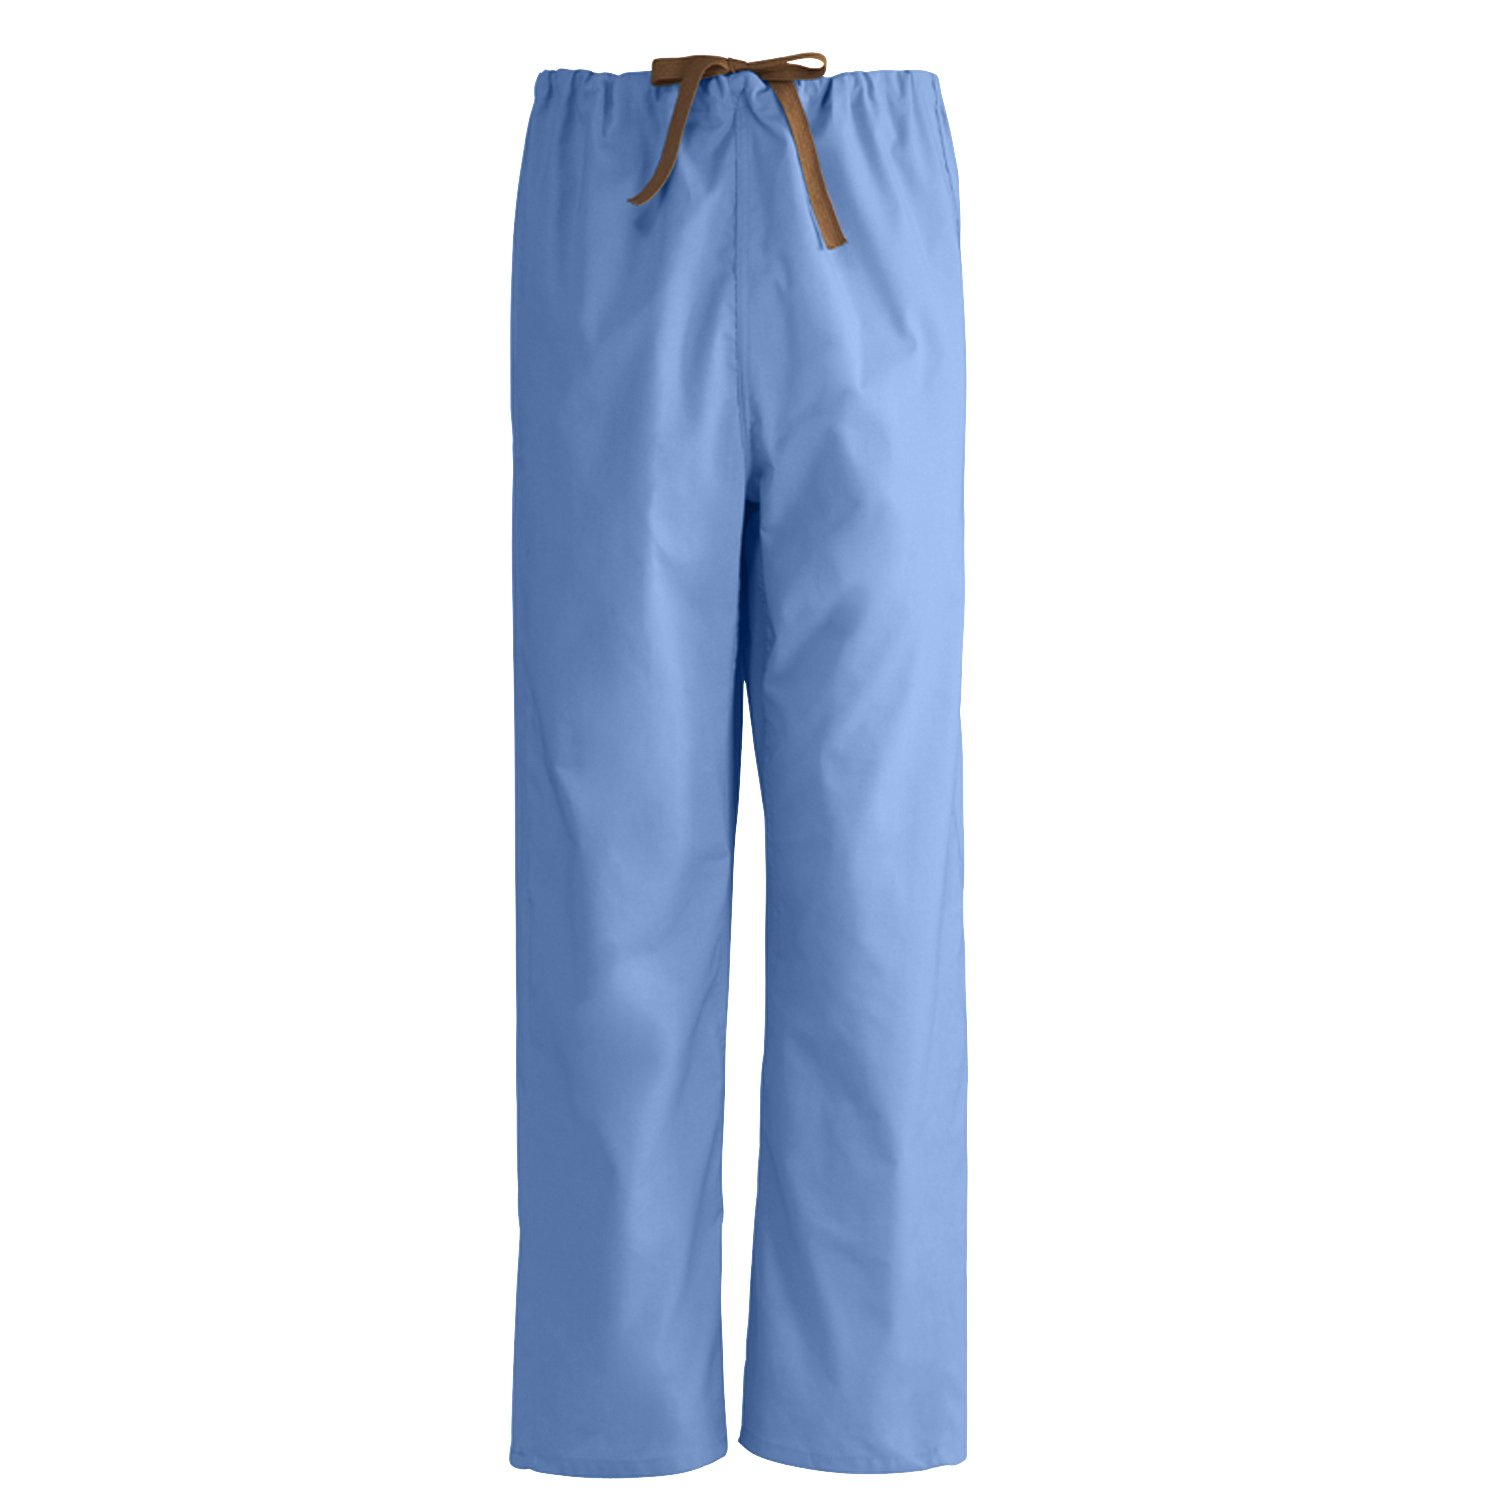 Medline Unisex 100% Cotton Reversible Scrub Pant, Large, Ceil Blue